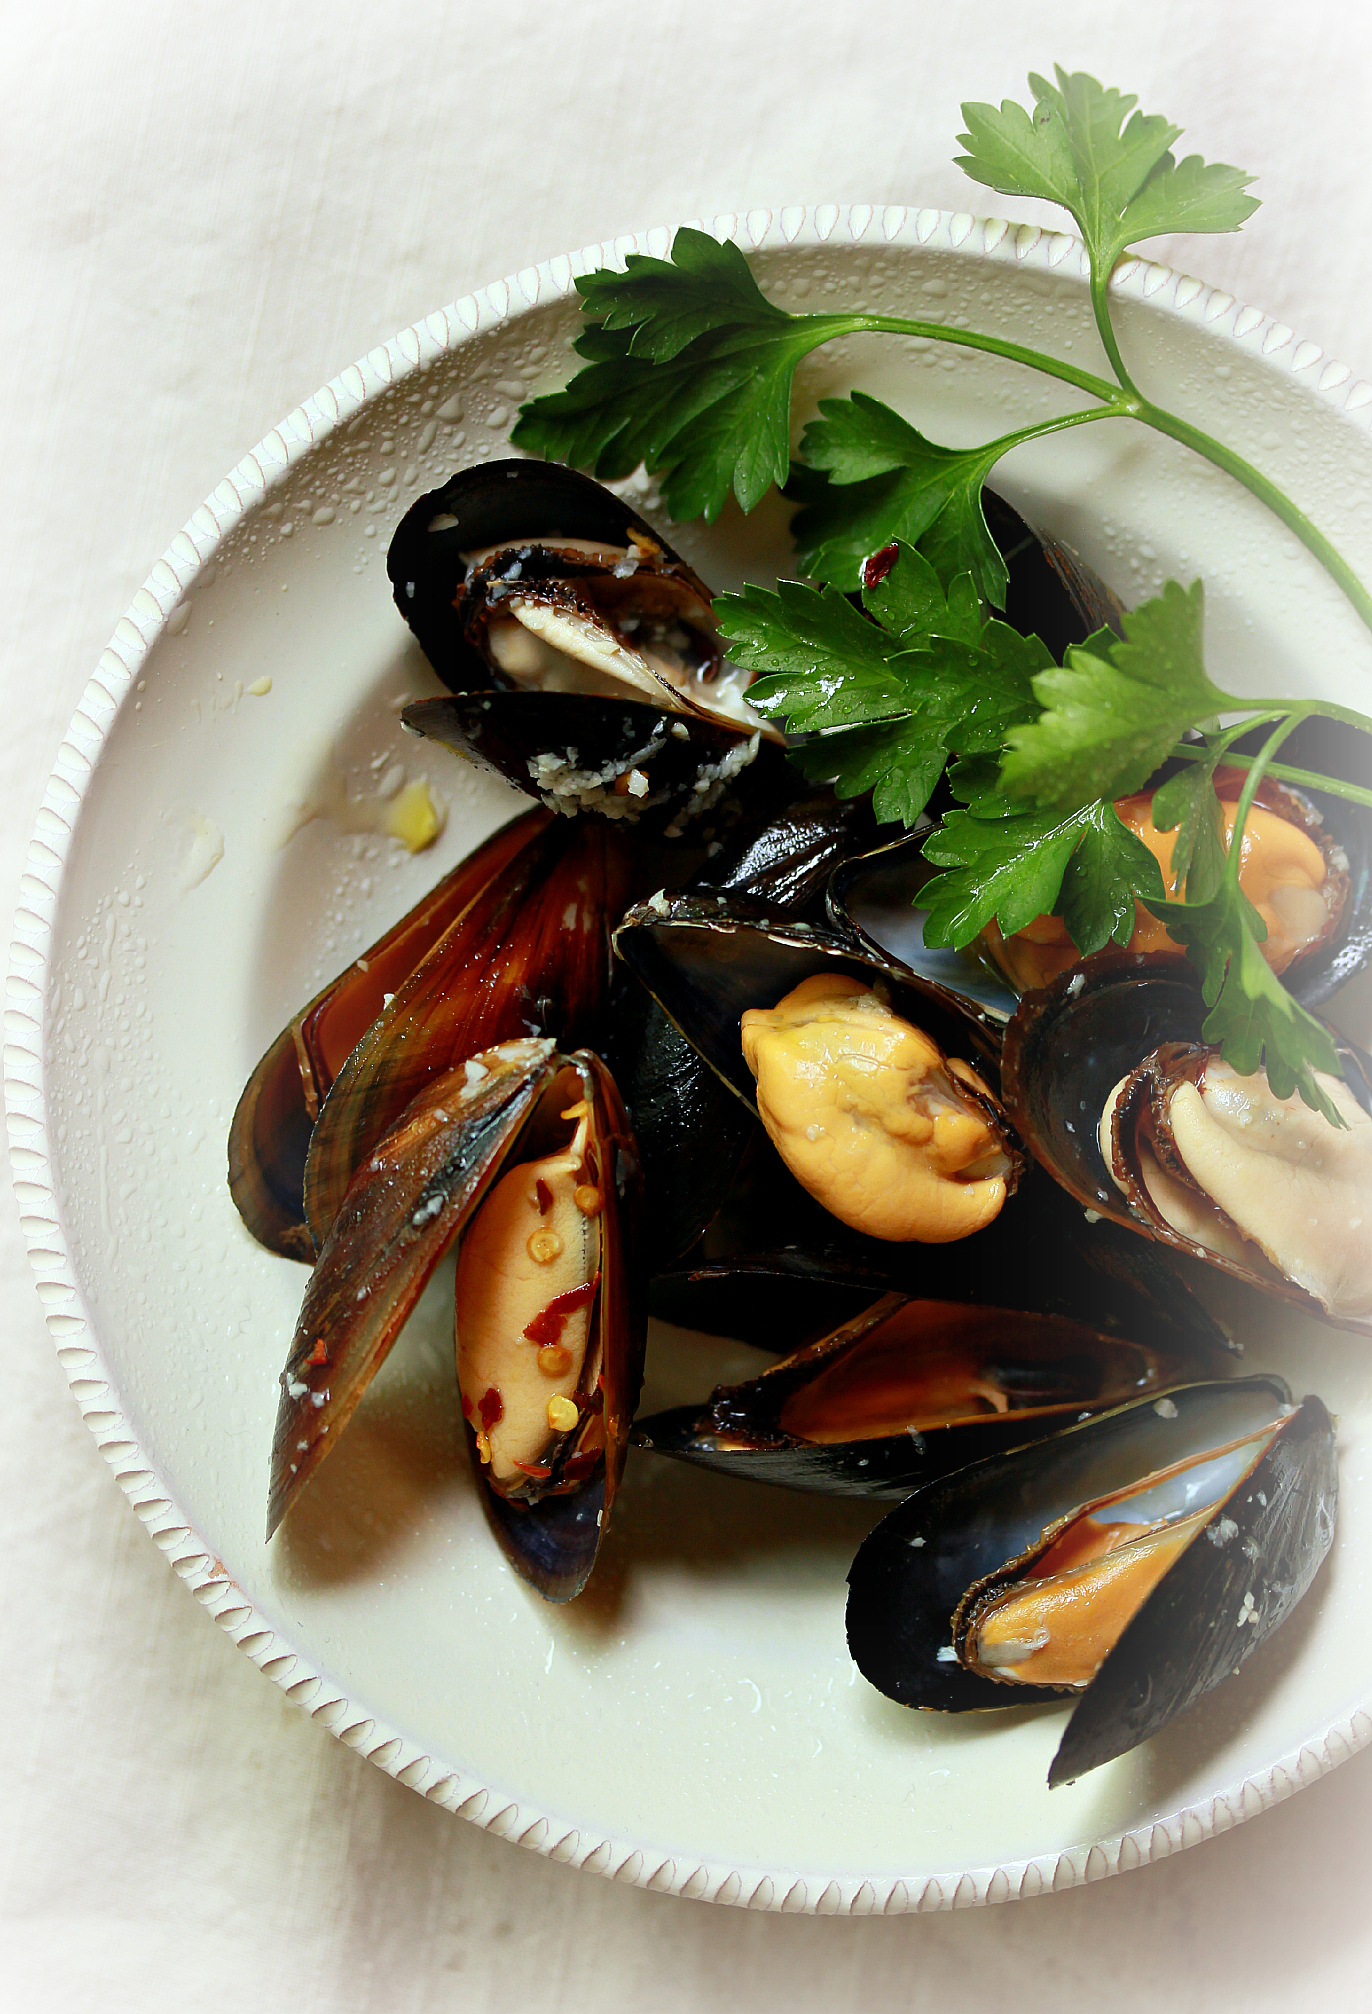 Steamed Mussels with Parsley by Dena T Bray